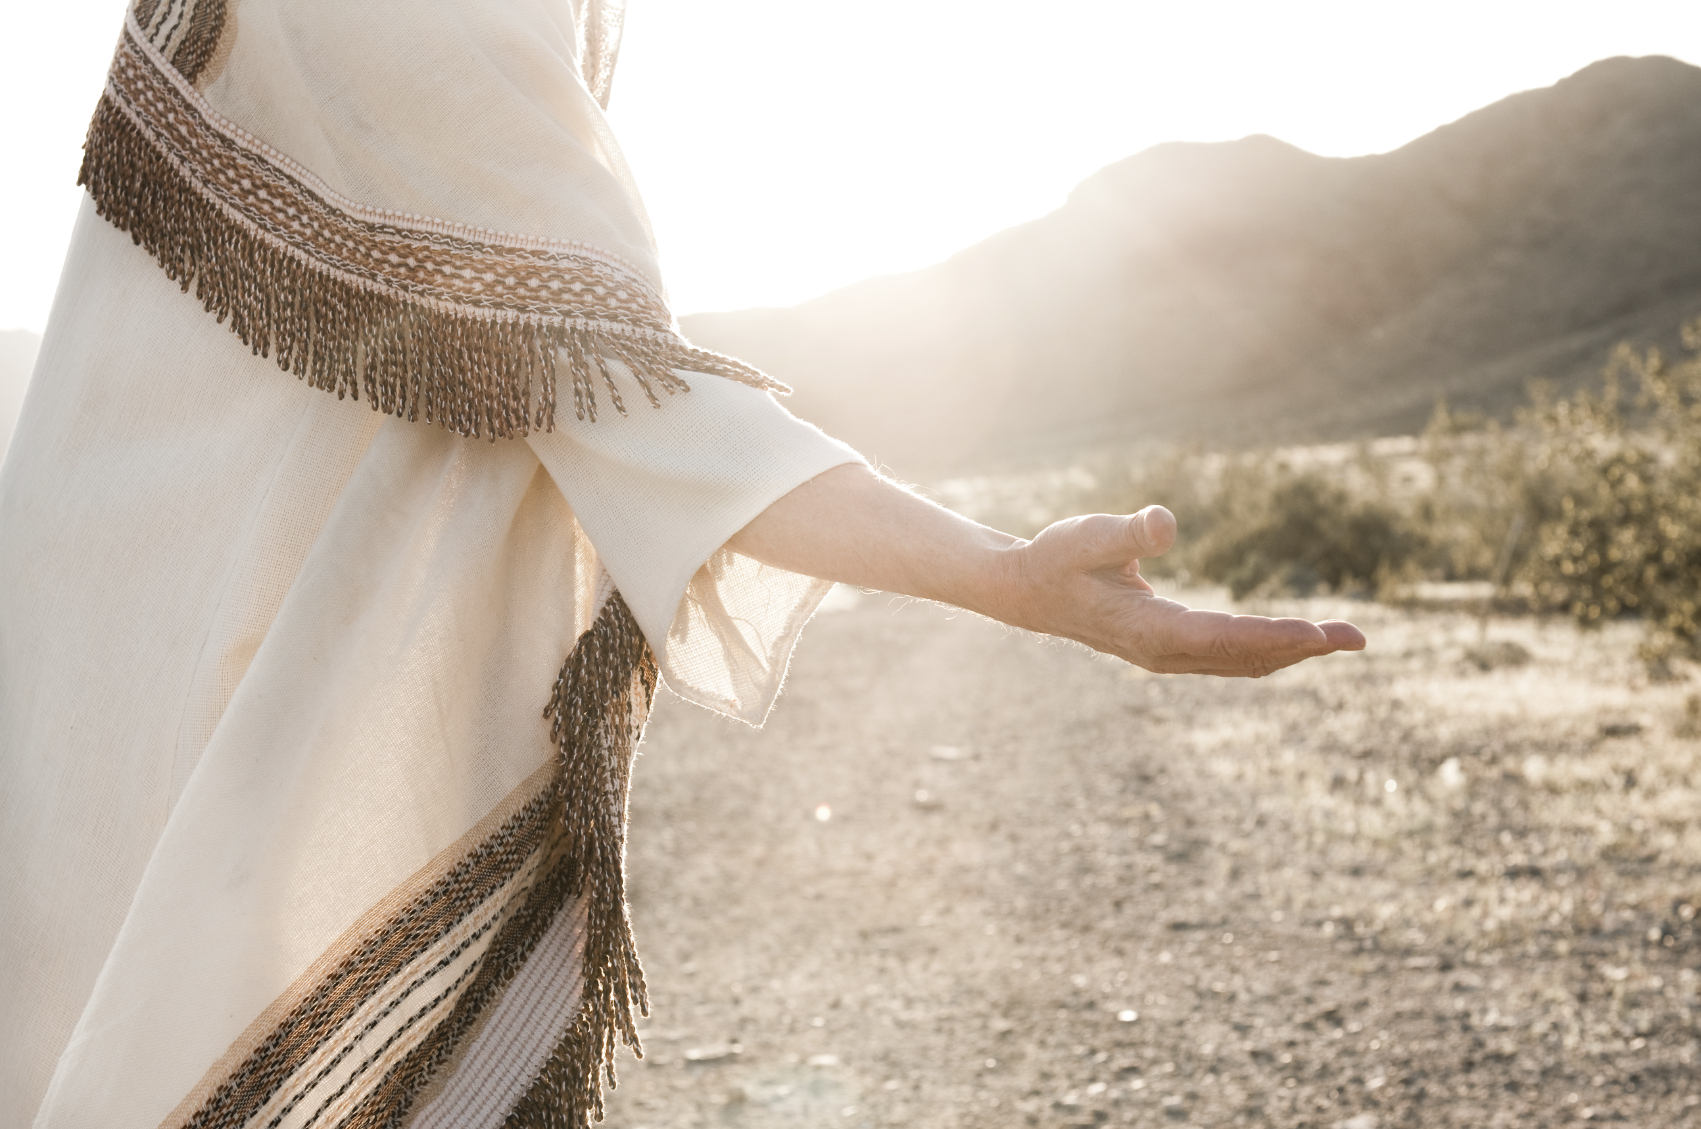 4 Lessons from Abraham - being bold when asking God - @GodlyWoman911